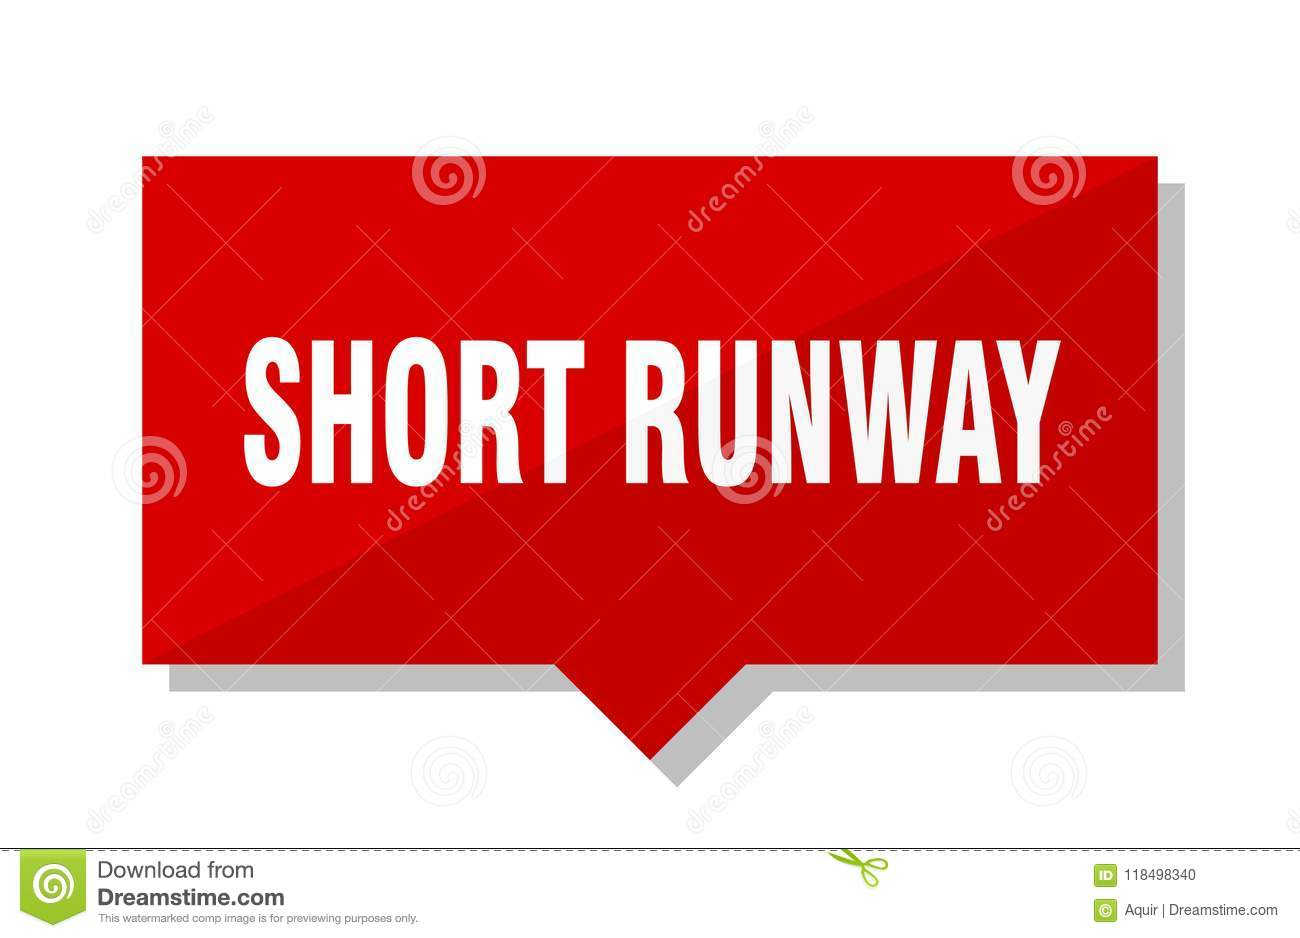 Communication on this topic: Tag: Short, tag-short/